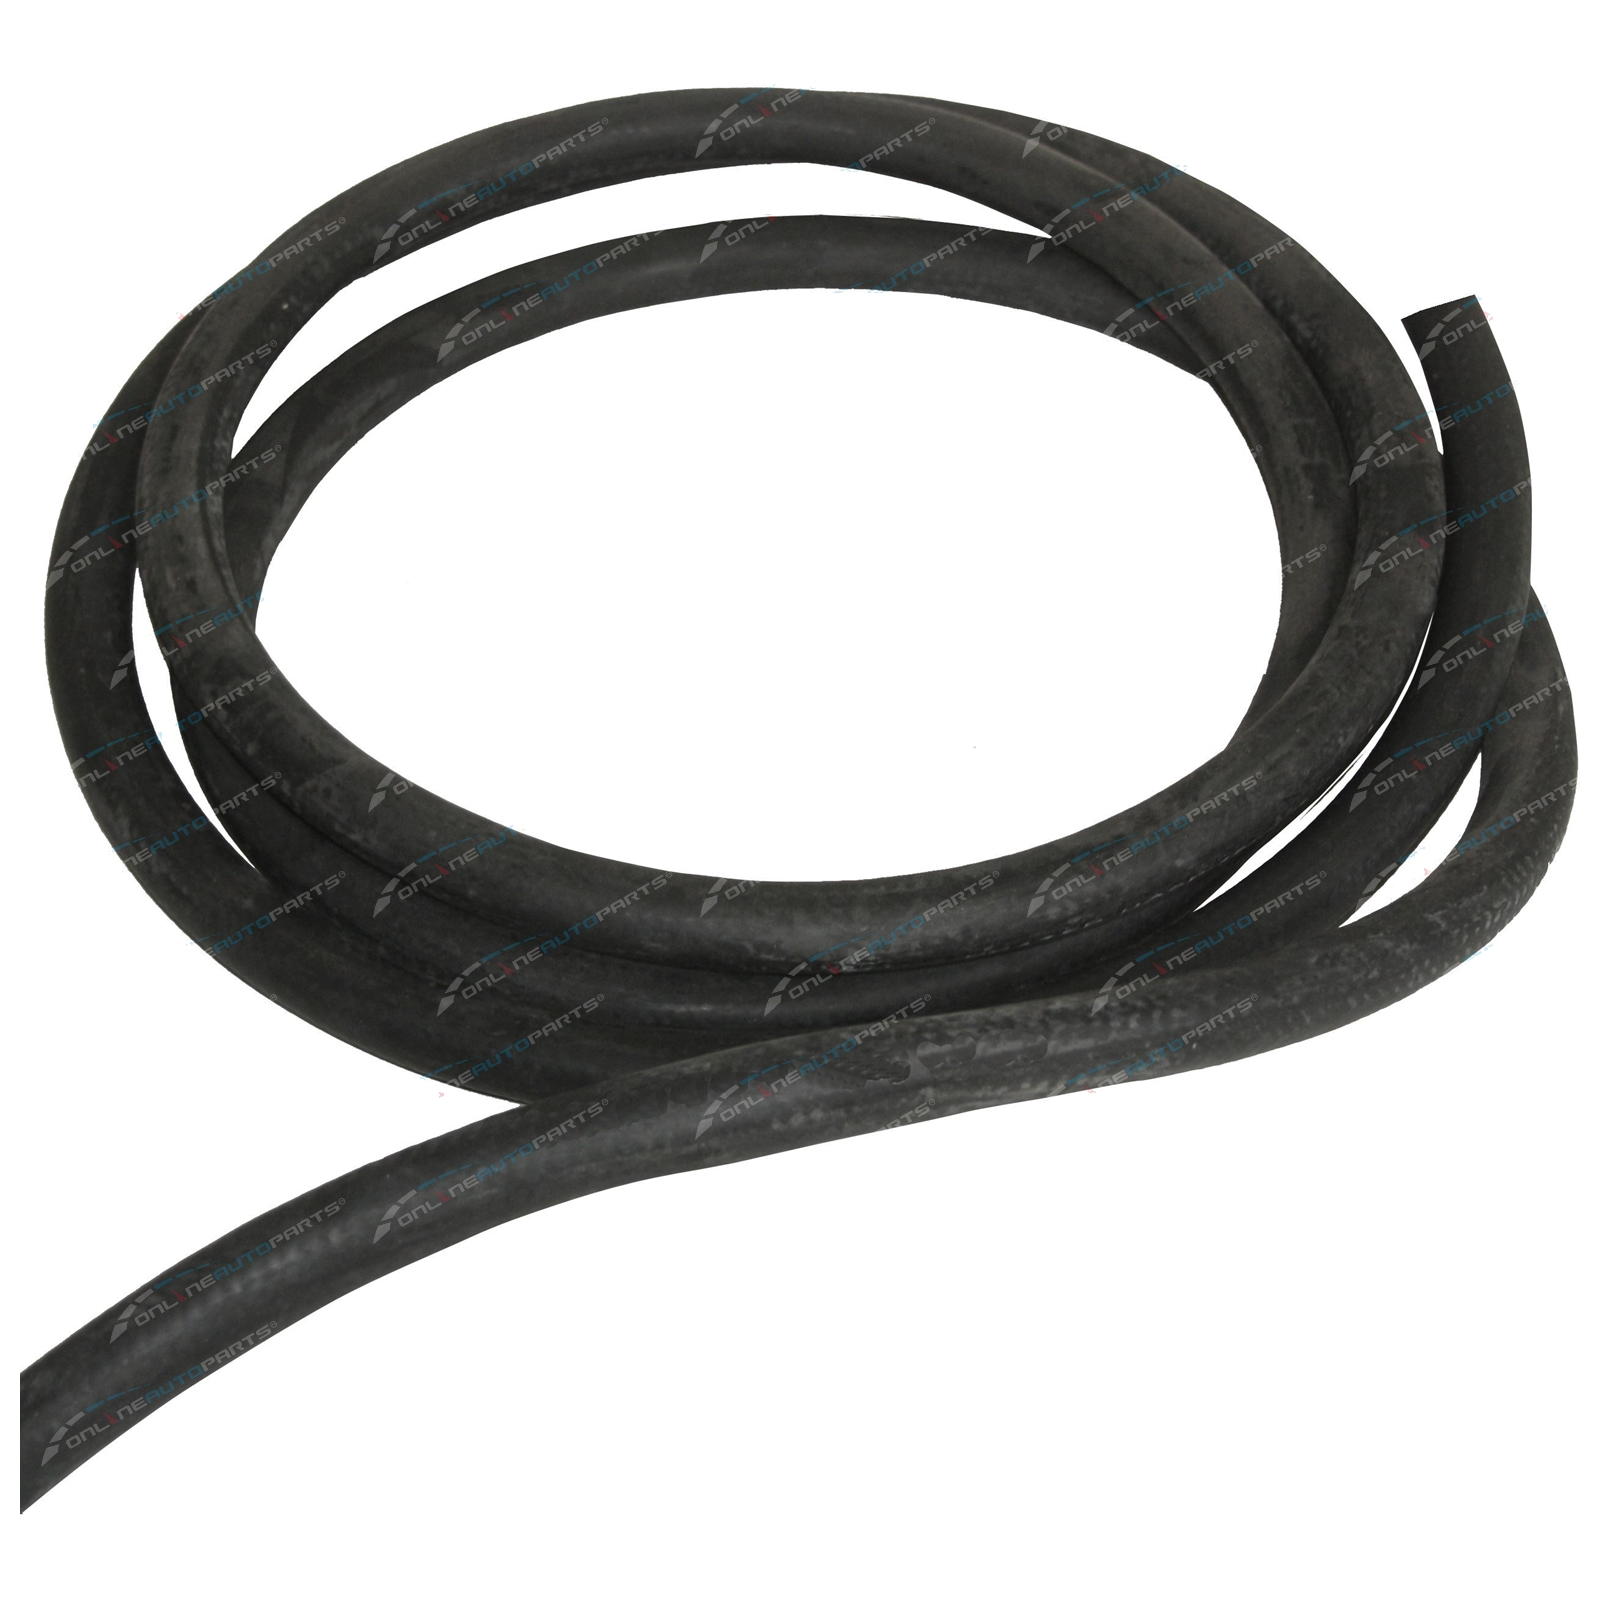 "Heater Hose 5/8"" 16mm ID x 1m Length Cut to Order"